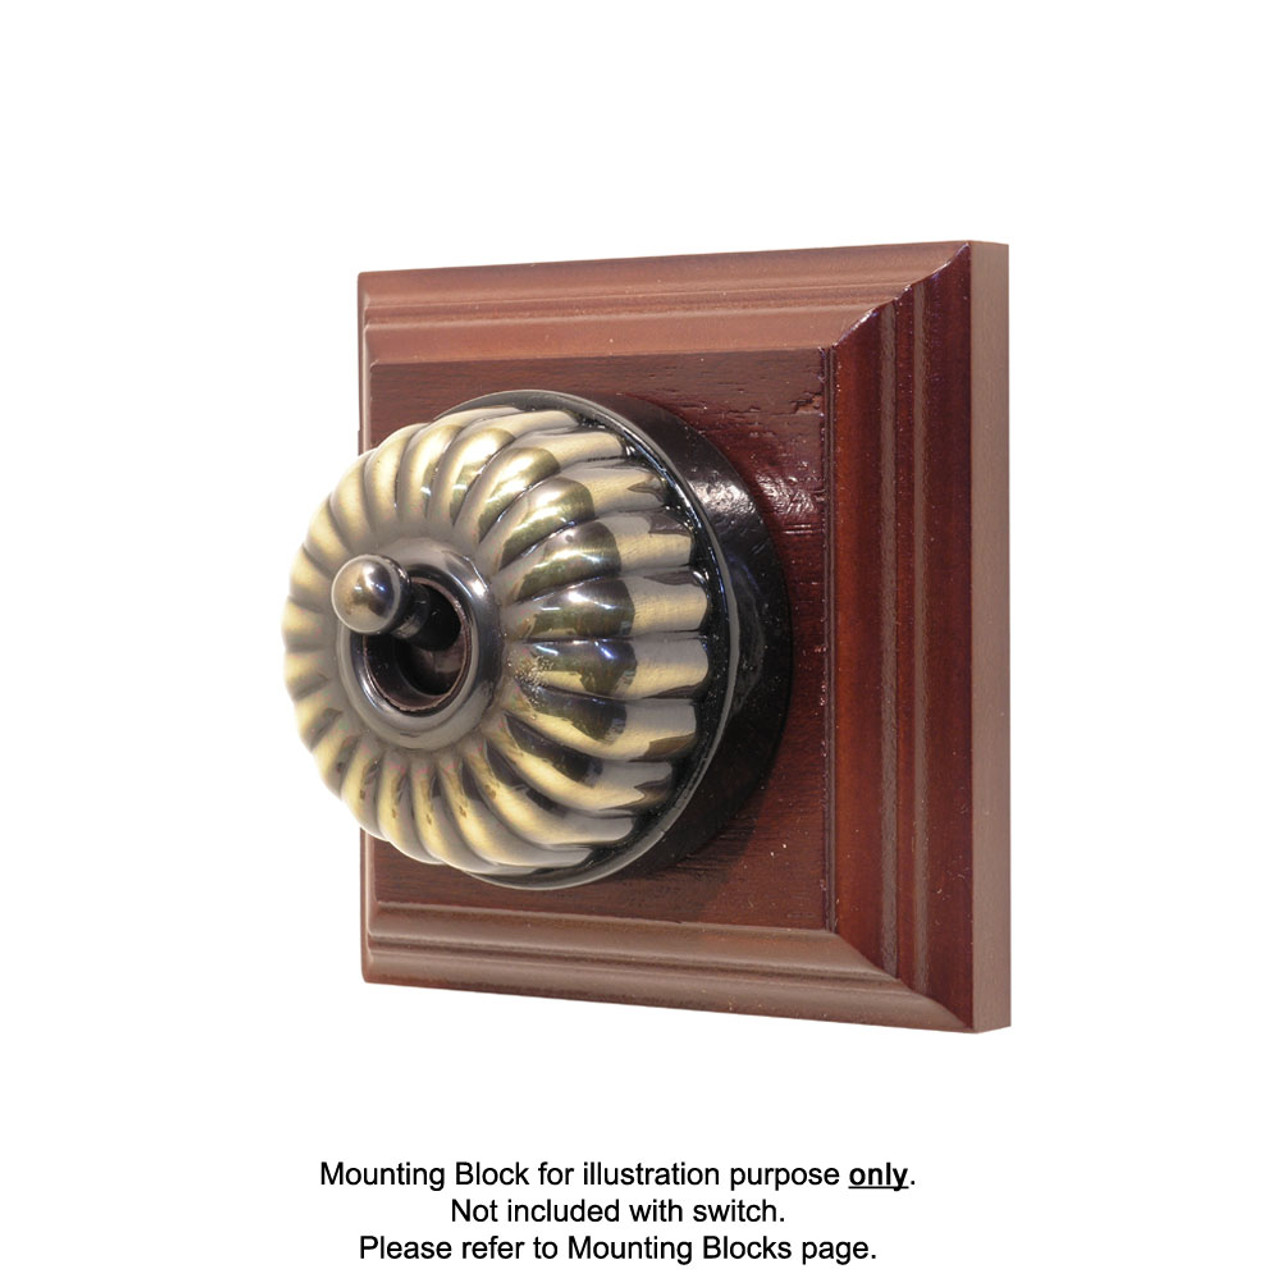 Heritage Clipsal Classic Switch Fluted With Black Porcelain Base Hpm Two Way Light Antique Brass